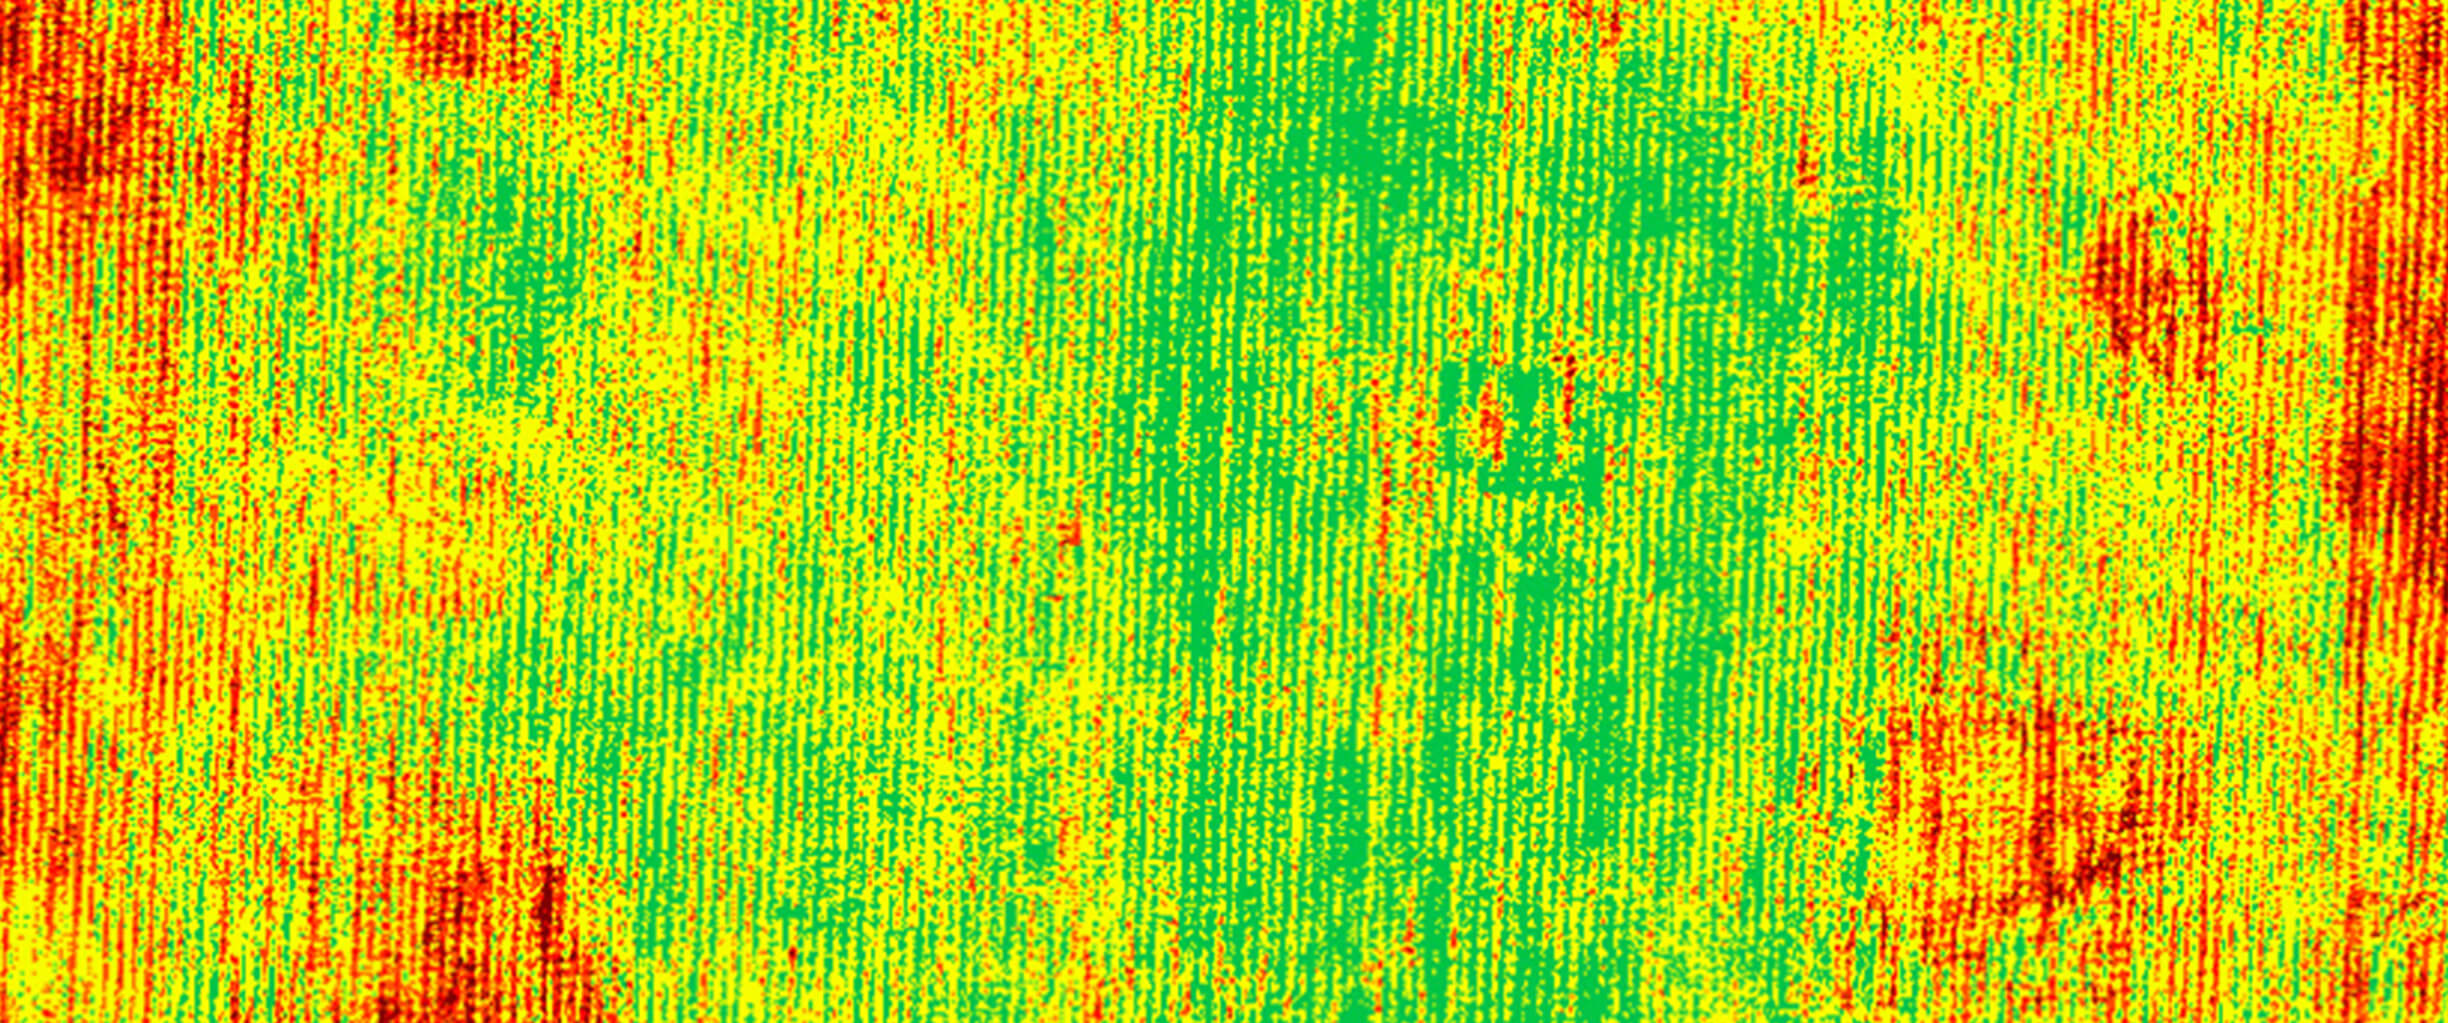 Parrot Sequoia+ Multispectral Camera - NDVI Map